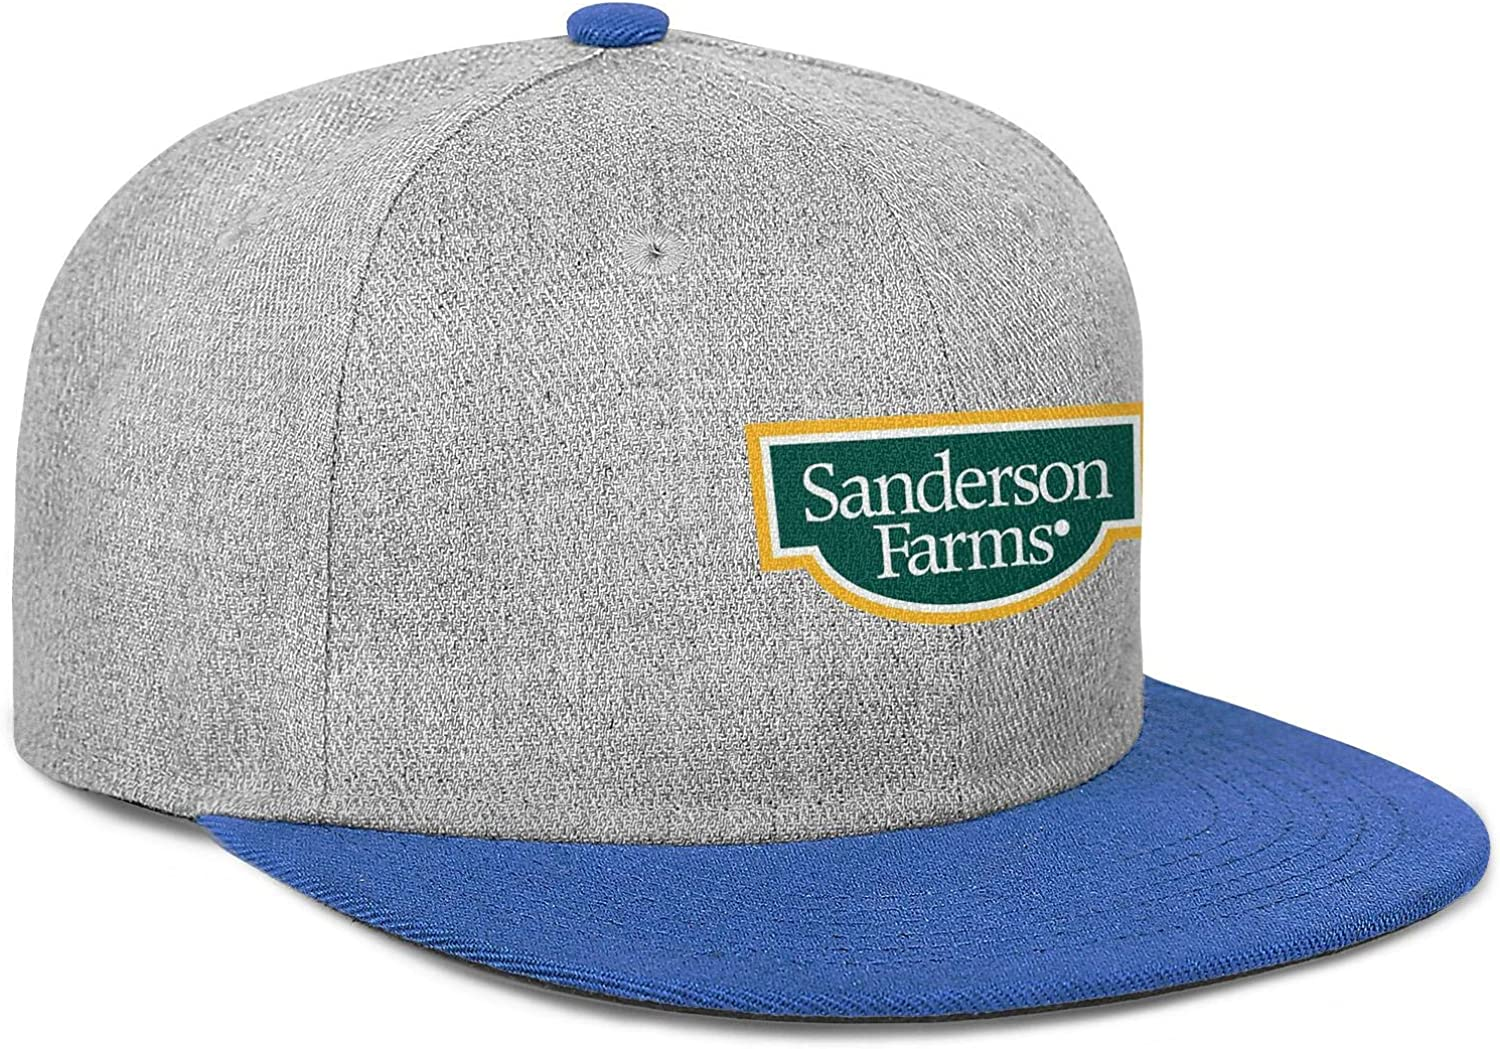 LZJDY Sanderson Farms Inc Logo Mens Womens Wool Cool Cap Adjustable Snapback Dad Hat